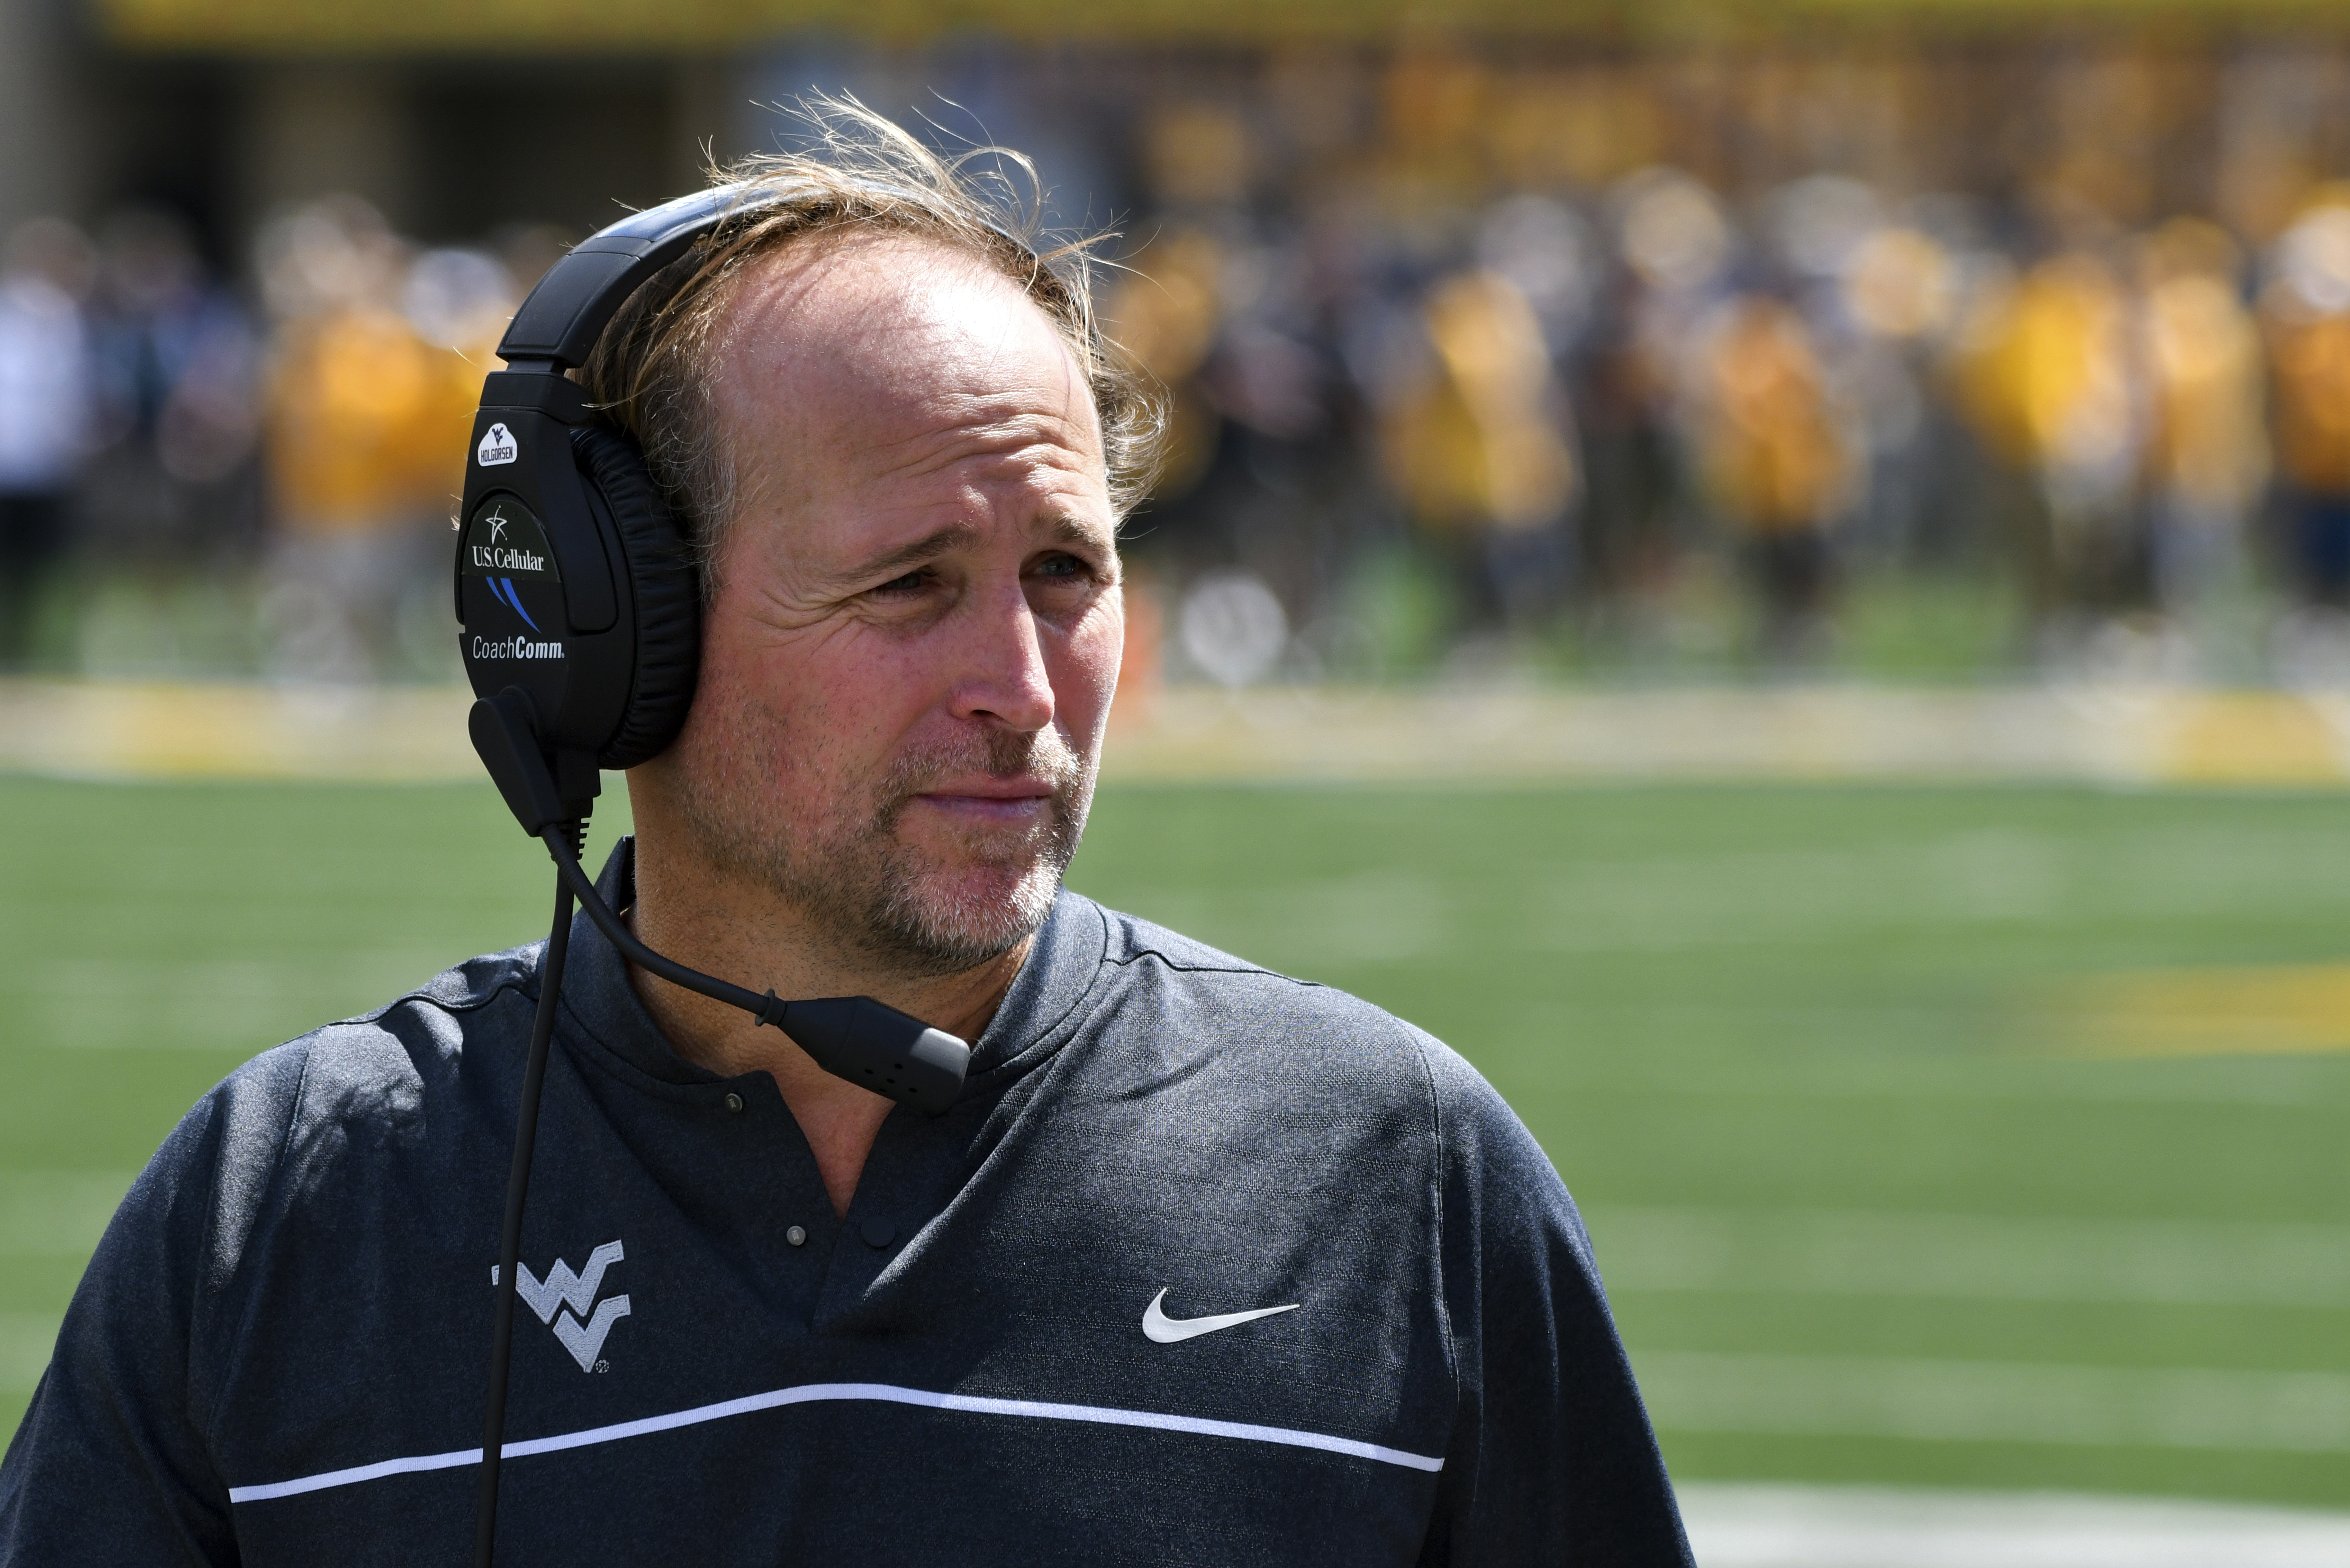 FILE - In this Sept. 3, 2016, file photo, West Virginia head coach Dana Holgorsen watches during the first half of an NCAA college football game against Missouri in Morgantown, W.Va. With Baylor and West Virginia still undefeated before the first CFP rank